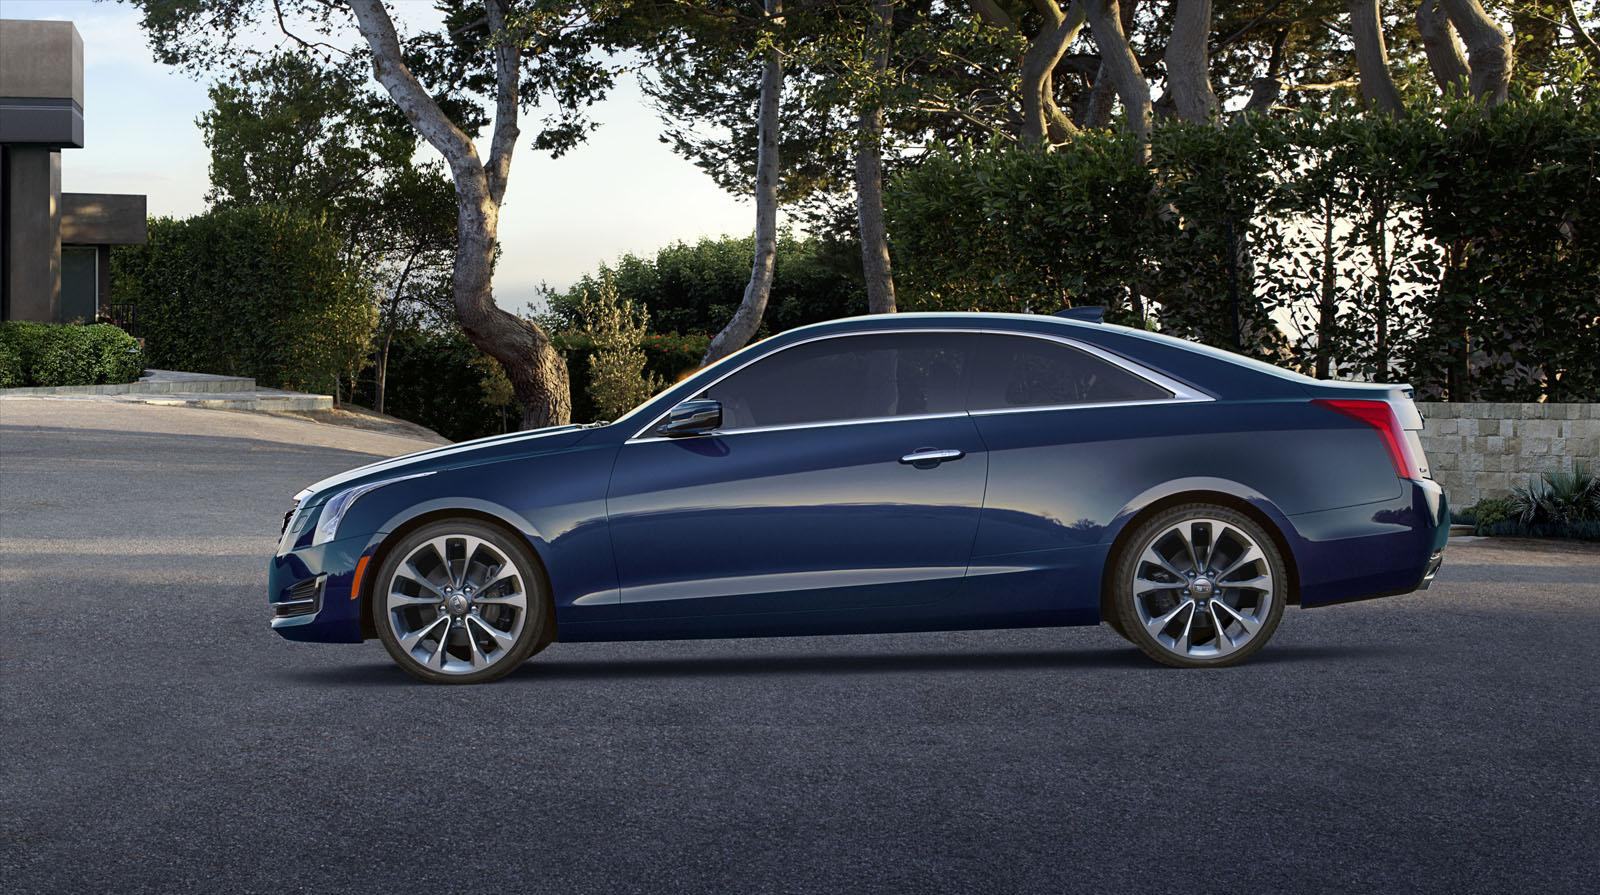 Cadillac ATS Coupe unveiled, new wreathless logo